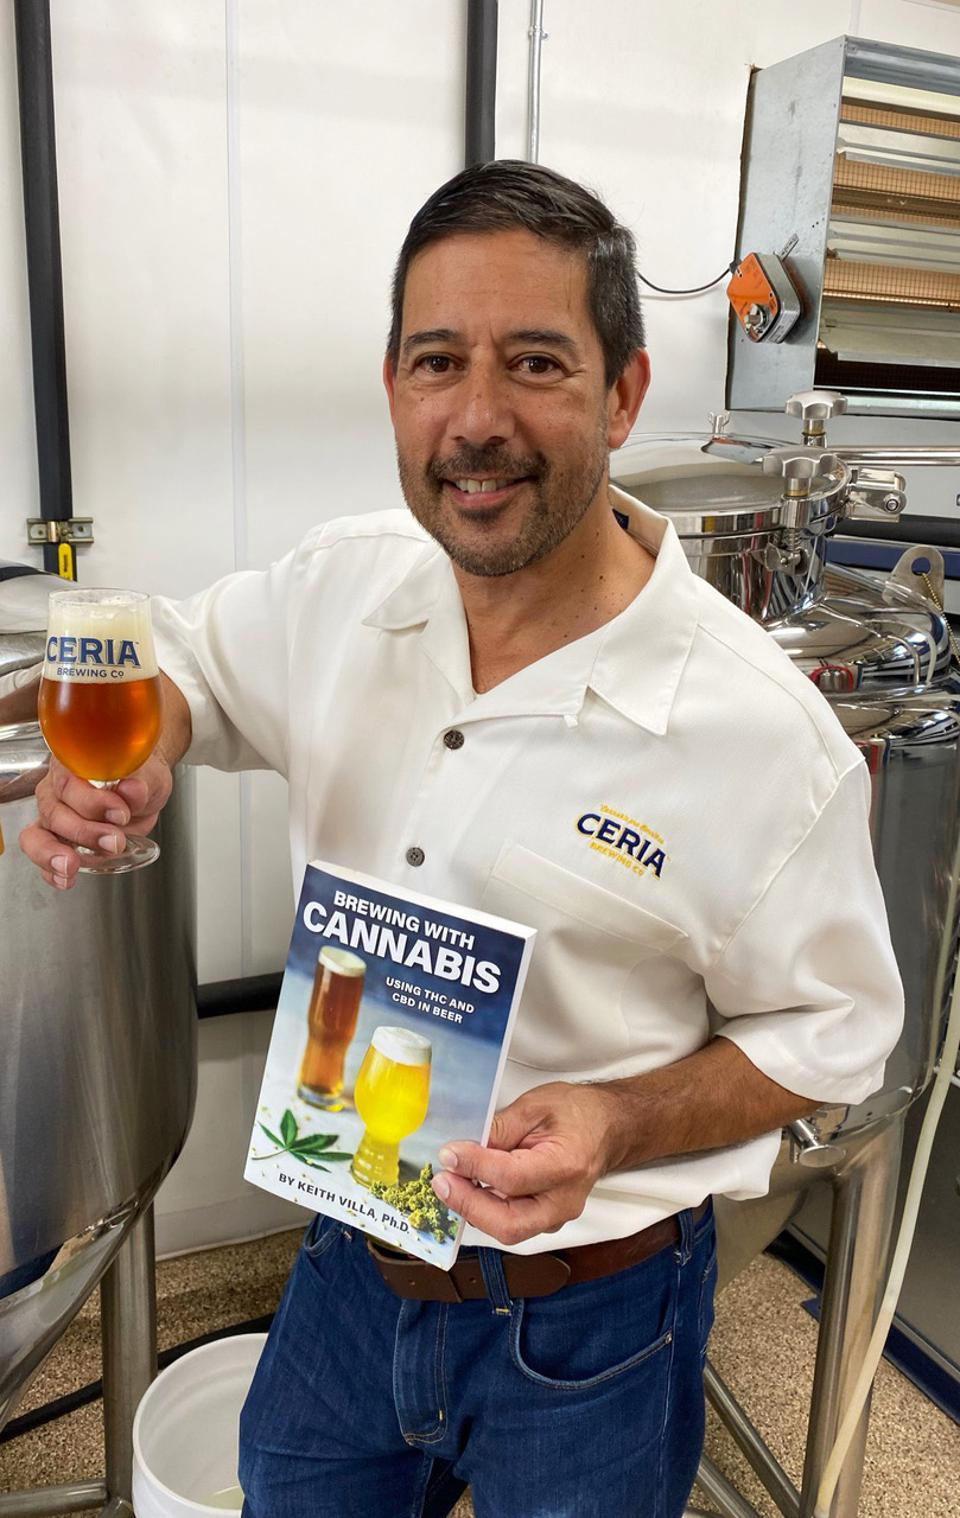 Dr. Keith Villa is a legend in the brewing industry as the creator of Blue Moon.